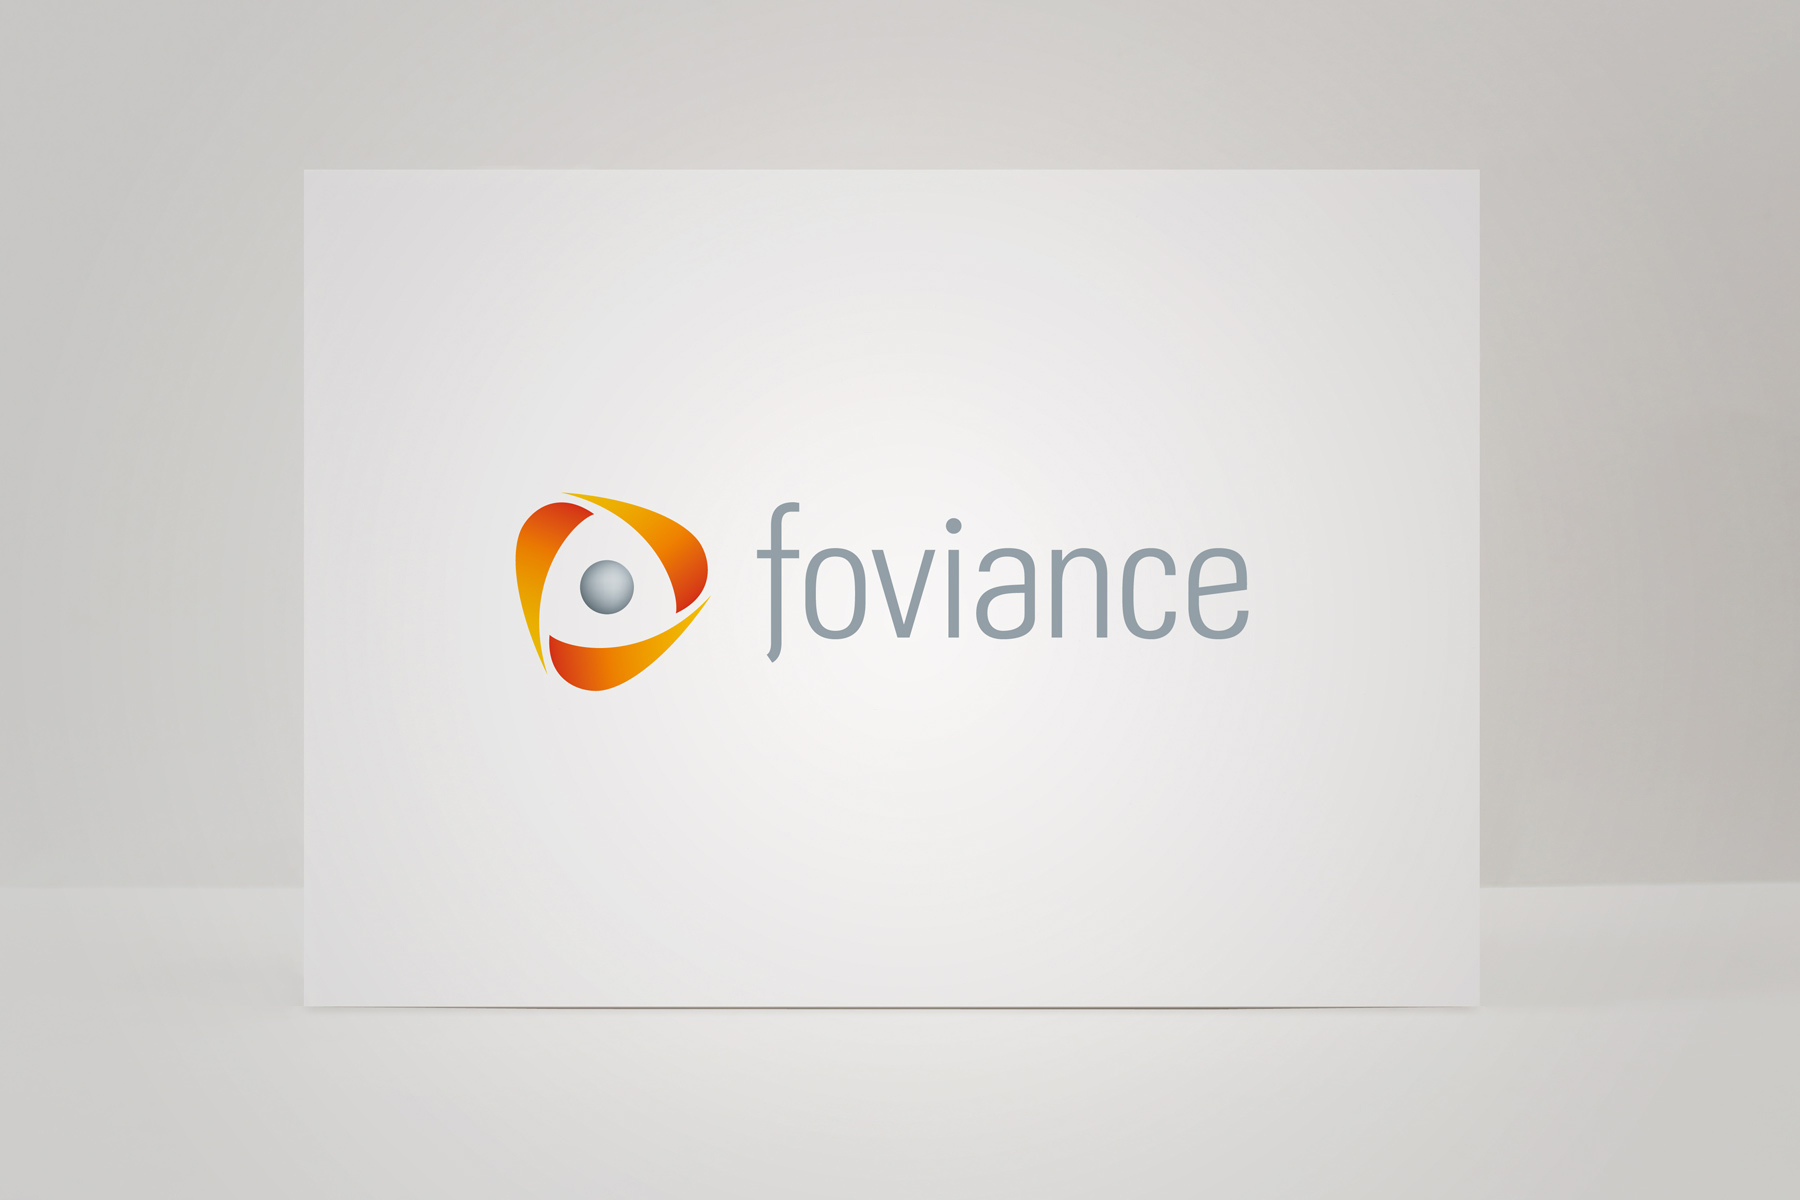 The Foviance brand is the result of a merger between two companies. The icon is a representation of their new three tiered offering.